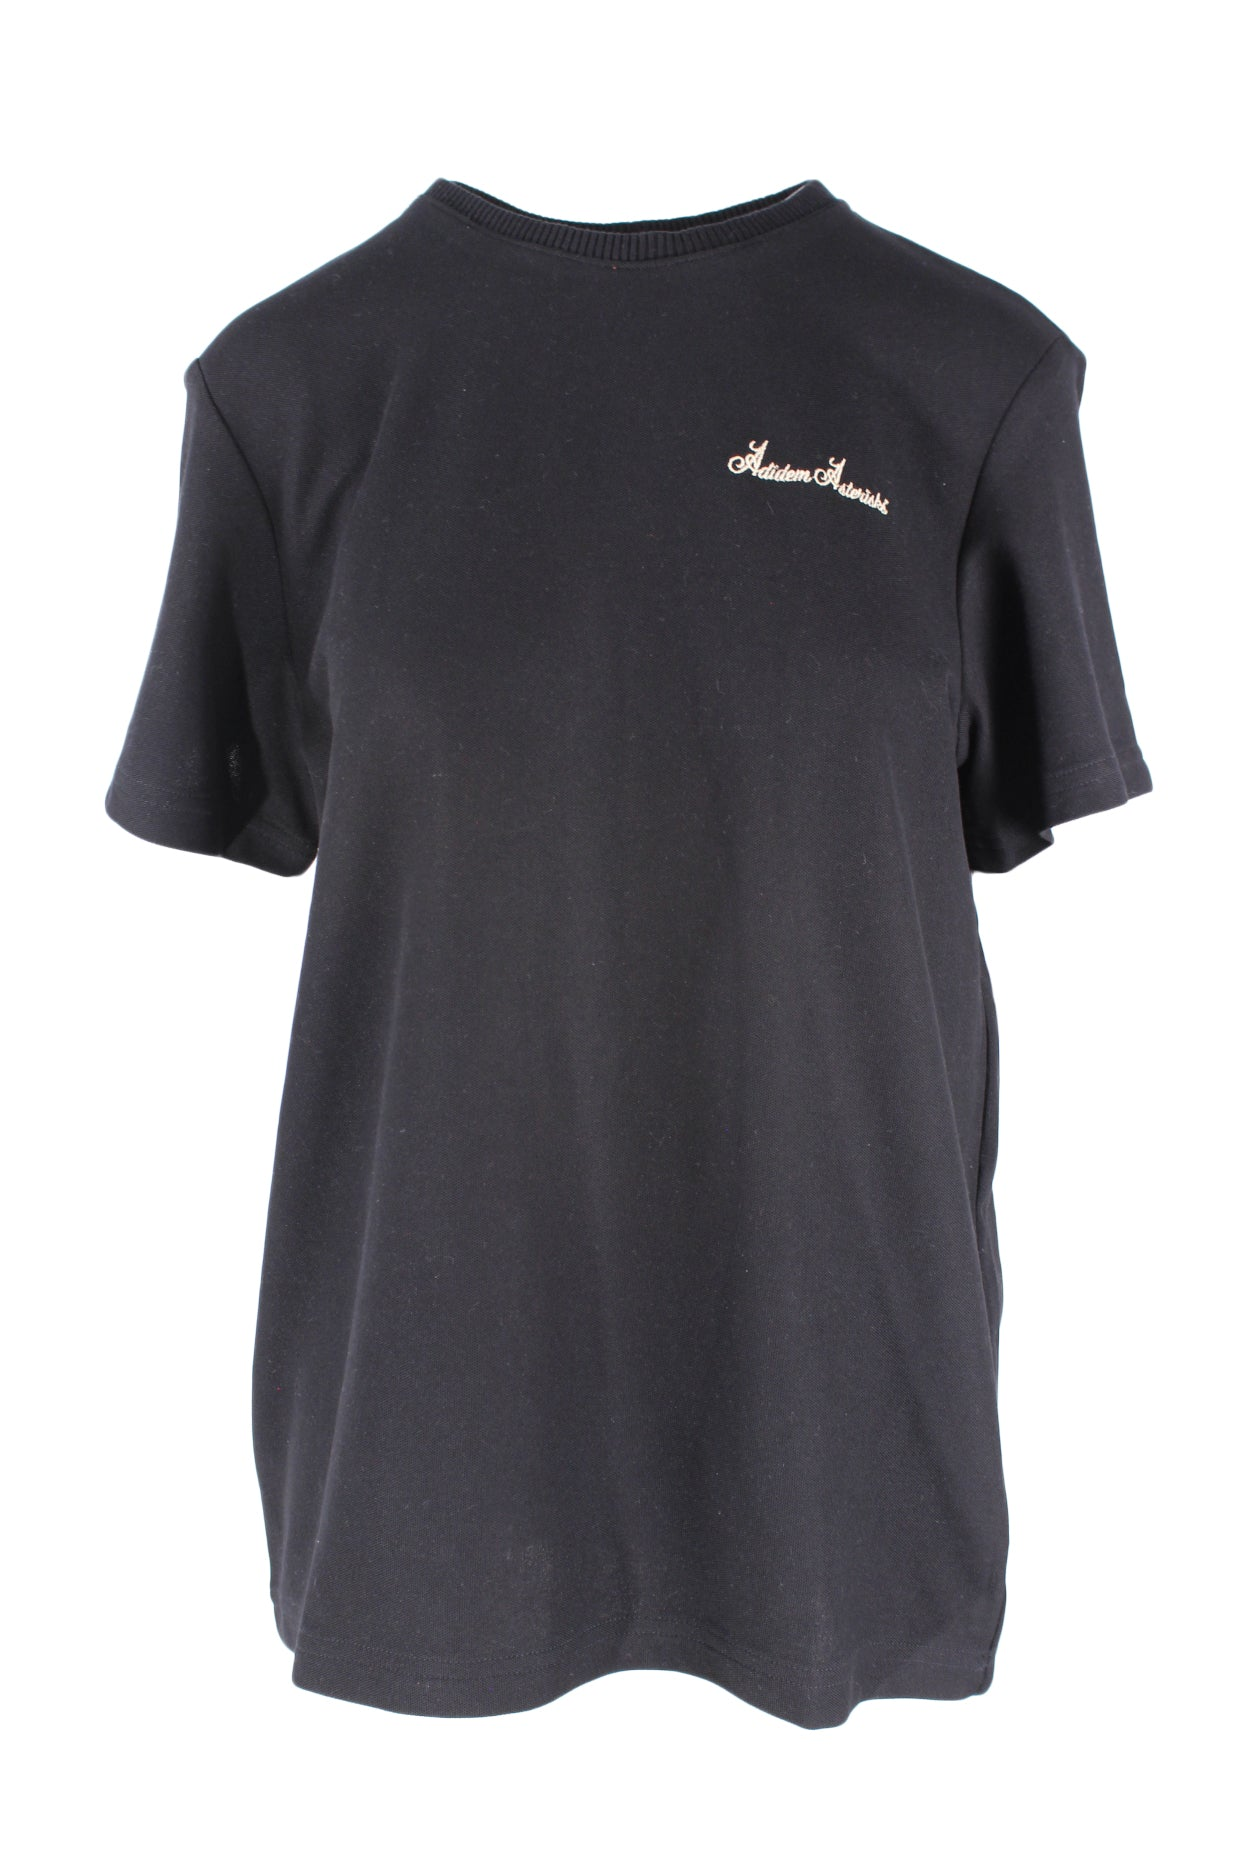 description: adidem asterisks black t-shirt. featuring a ribbed collar and a cream embroidered chest logo.